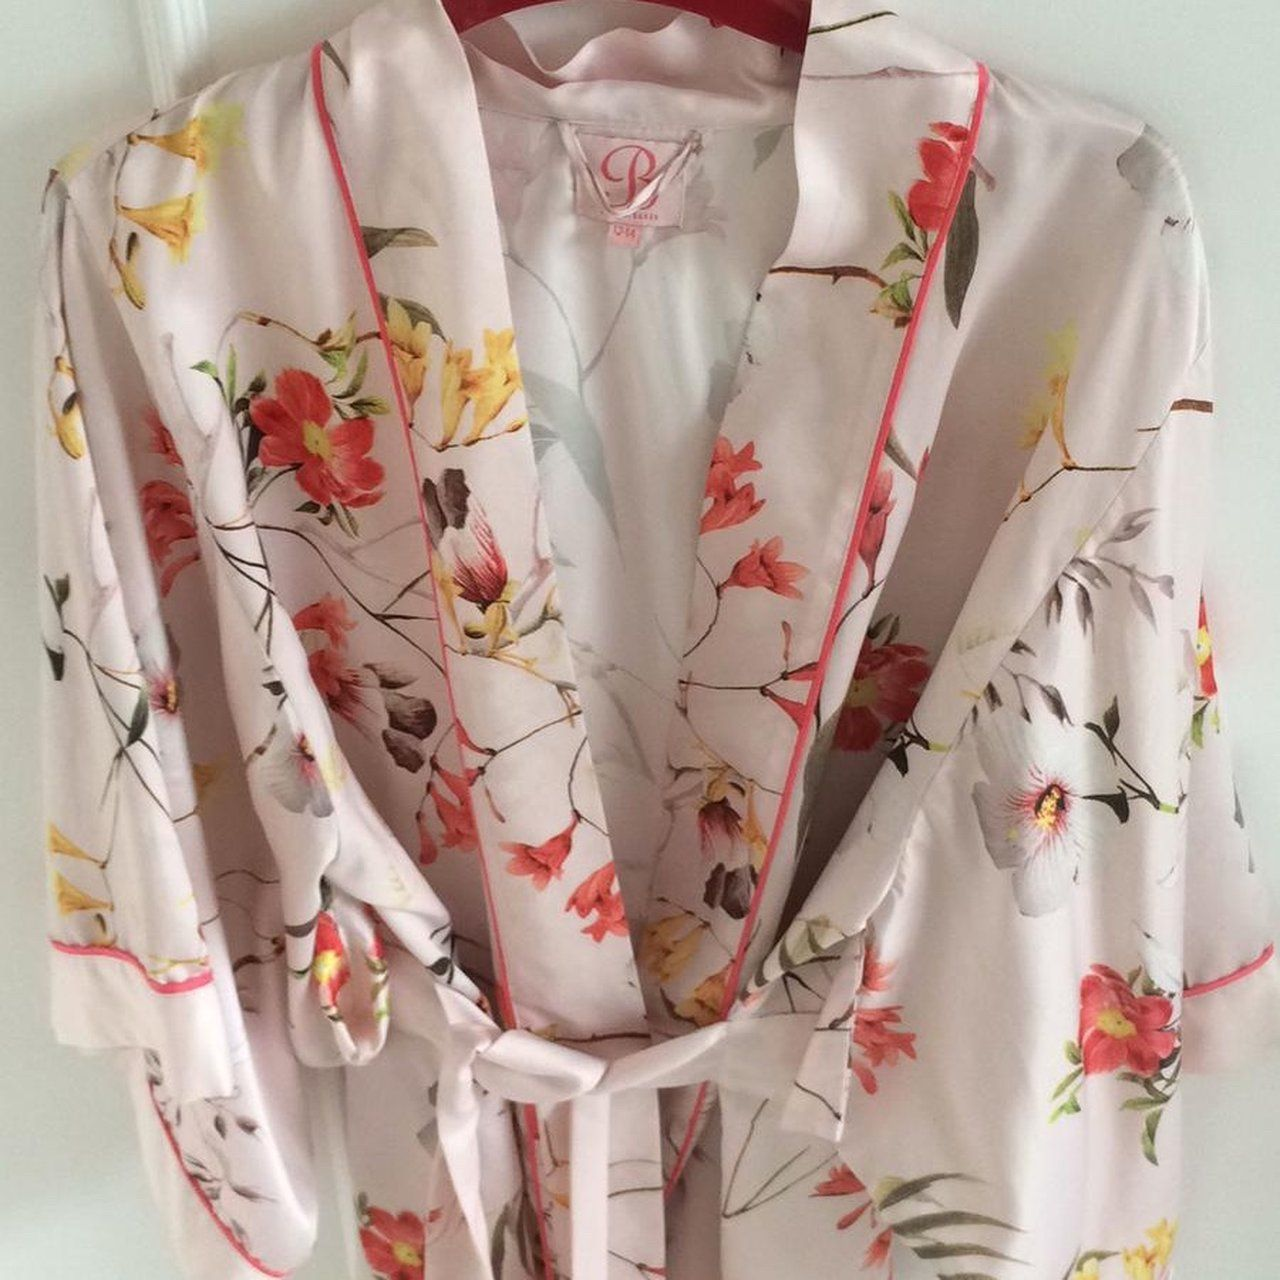 d0d96a04c Ted Baker dressing gown for sale. Light and pretty. Size but - Depop